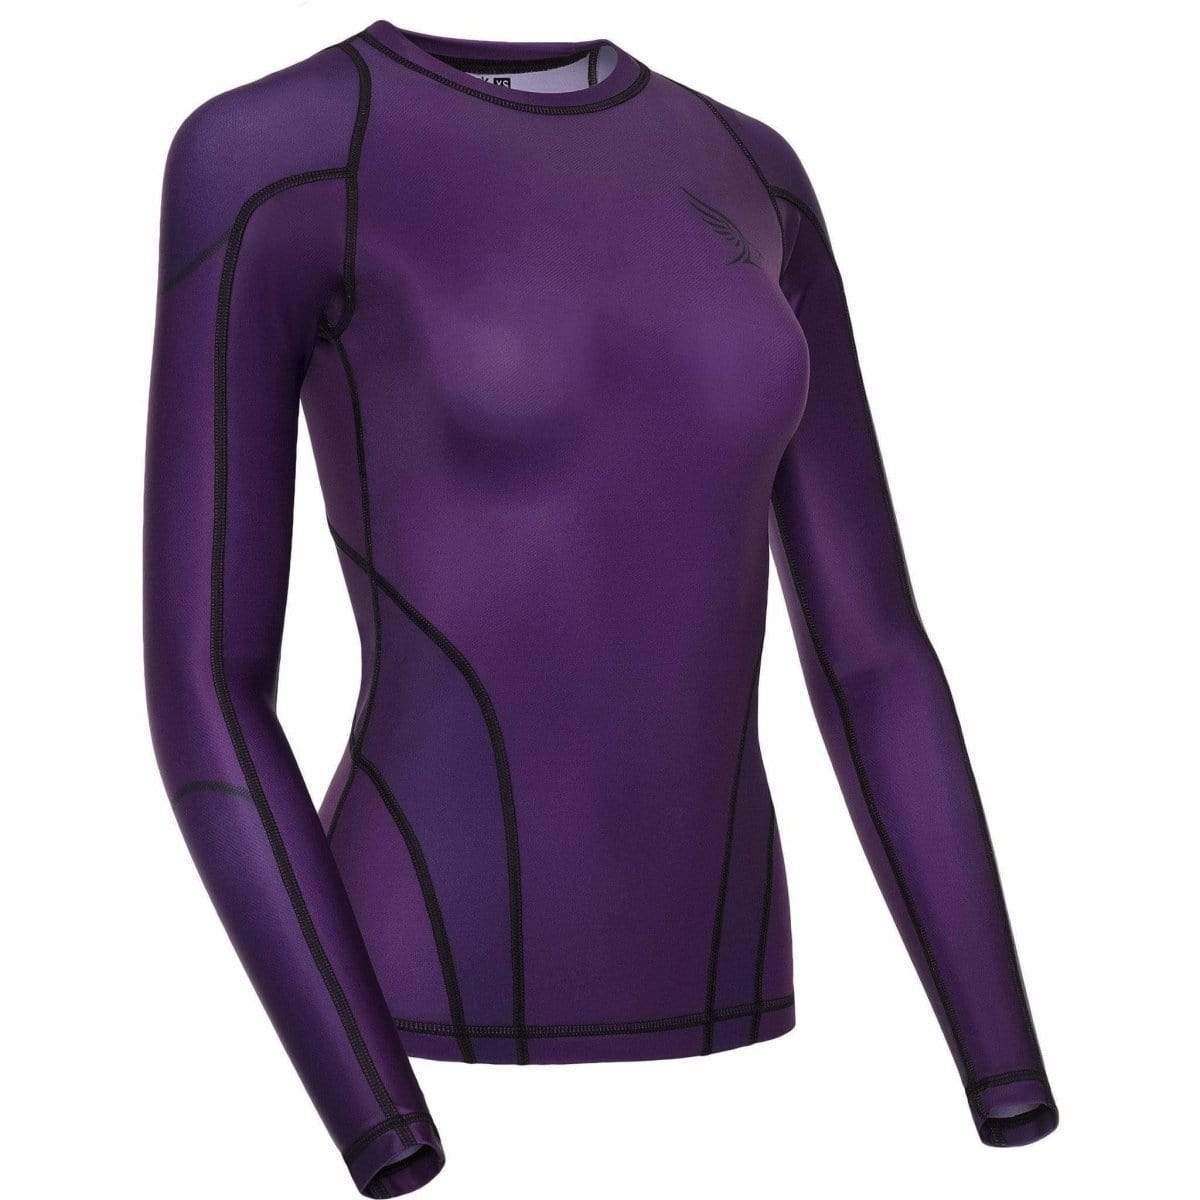 Habrok Rash Guard XS / PURPLE Pugnator | Rash Guard | Full Sleeve | Women